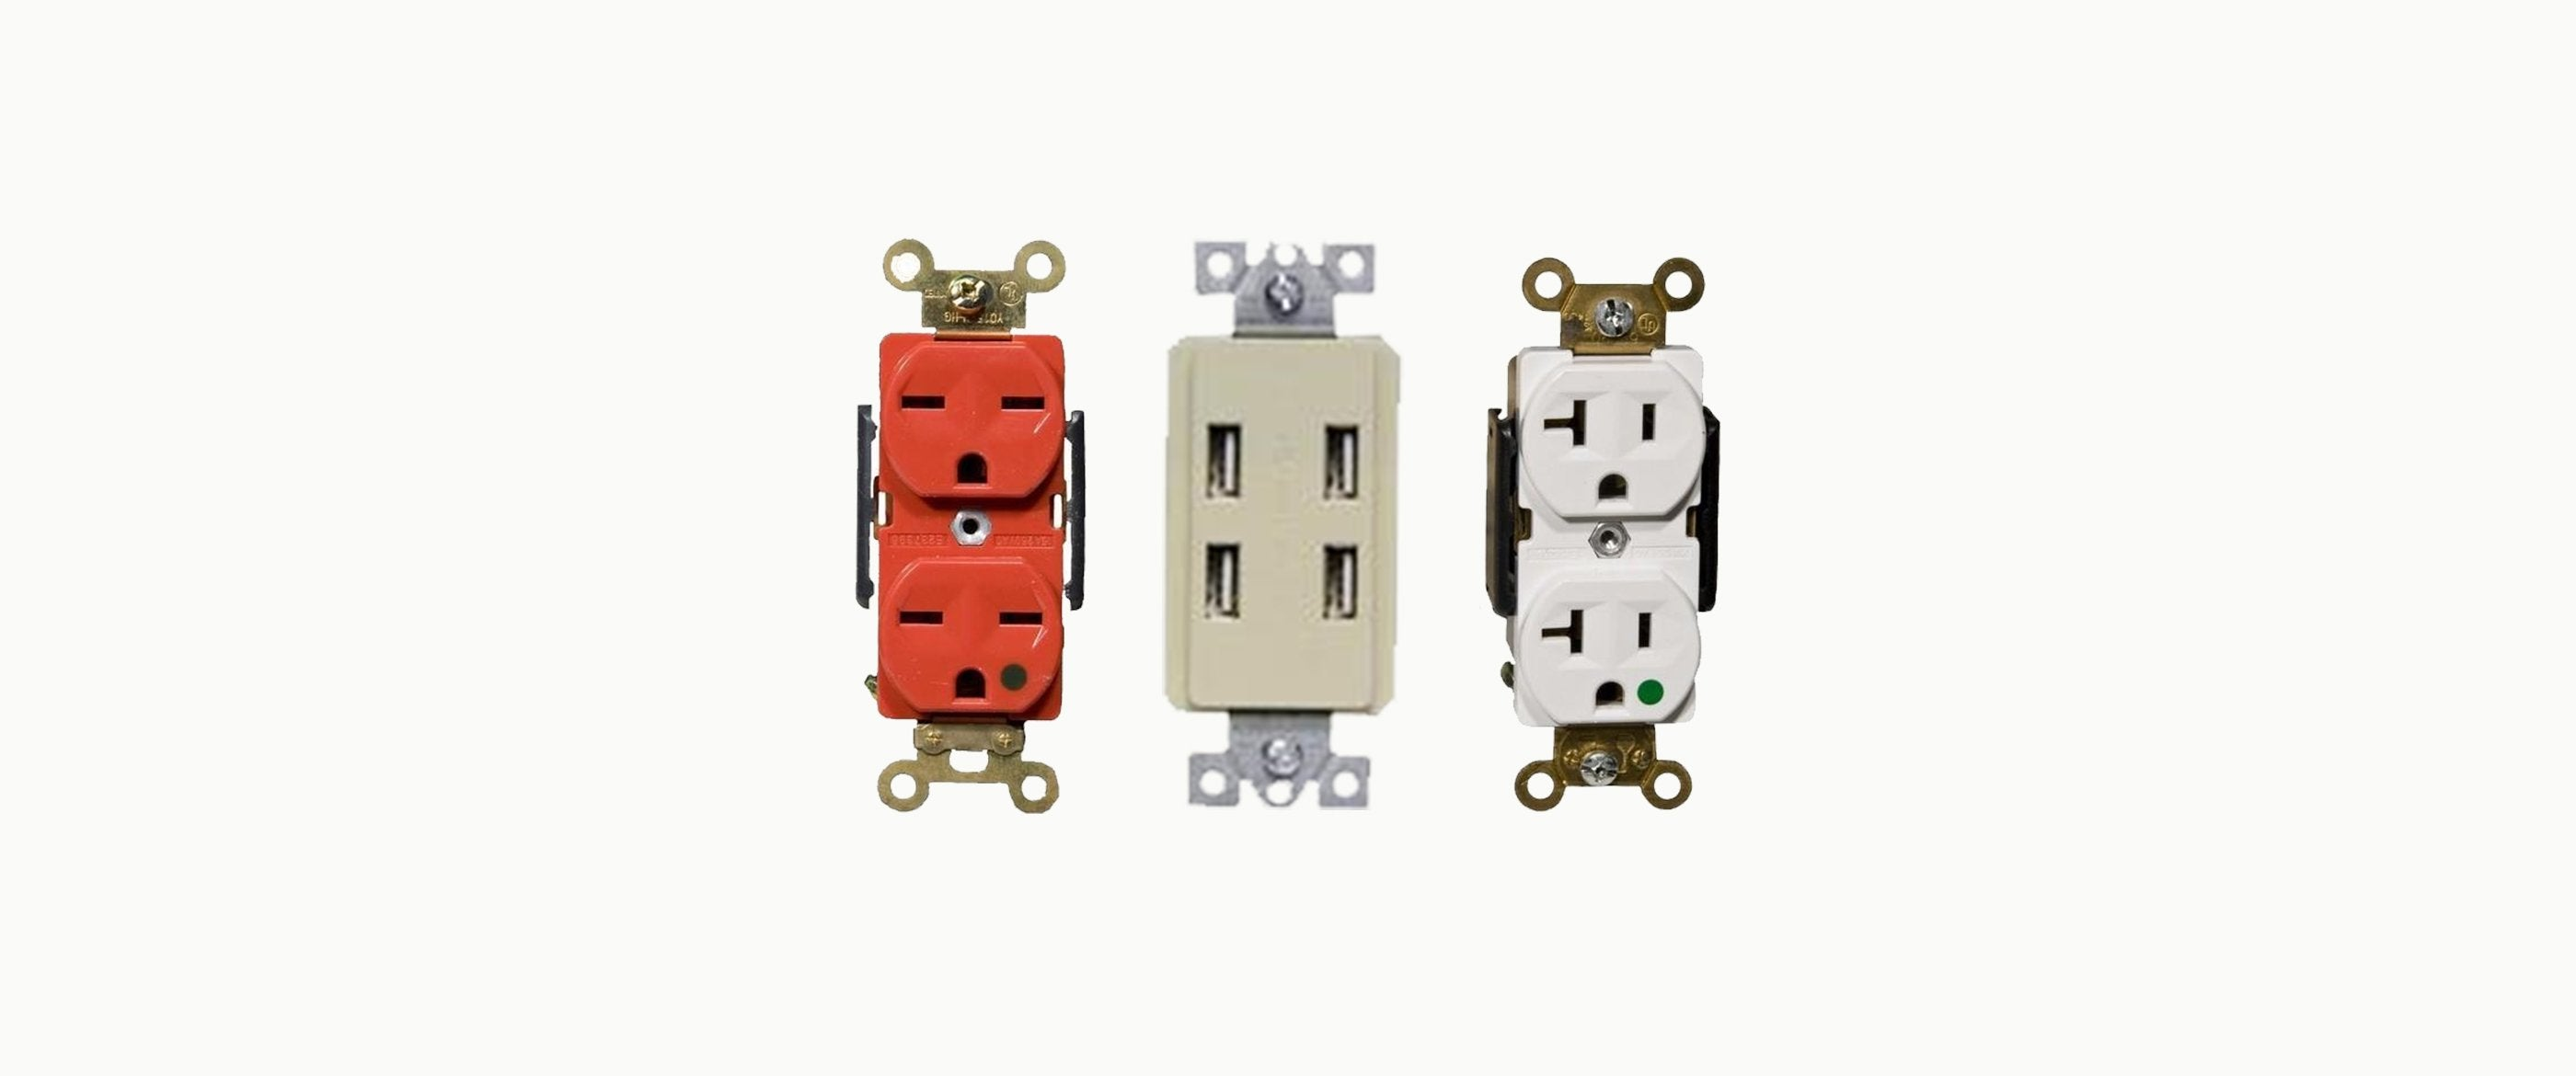 Brilliant Electrical Receptacles And Electrical Switches Warehouse Lighting Com Wiring Cloud Oideiuggs Outletorg